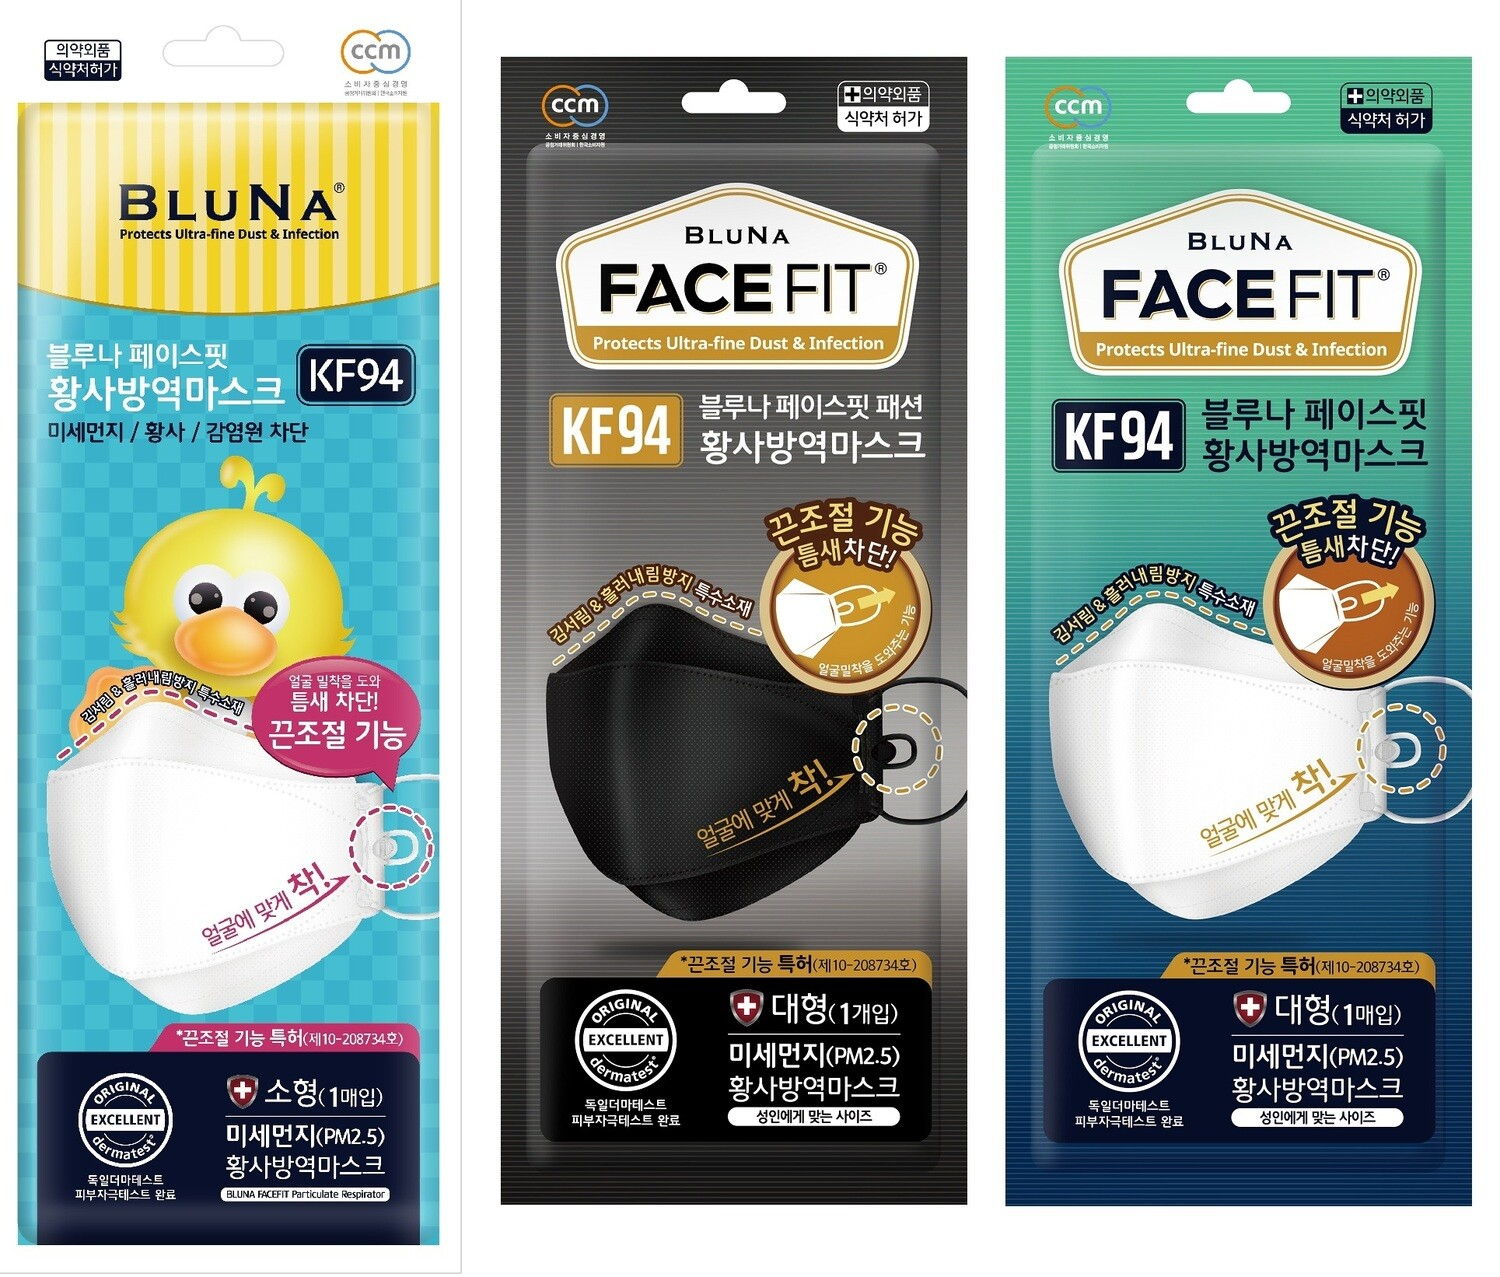 """NEW ARRIVAL"" BLUNA FACEFIT KF94 MIX&MATCH!! 100pcs 블루나 페이스 핏 황사마스크 100pcs 믹스앤매치 스페셜!!!' ""Free Shipping"" (Official Distributor)"